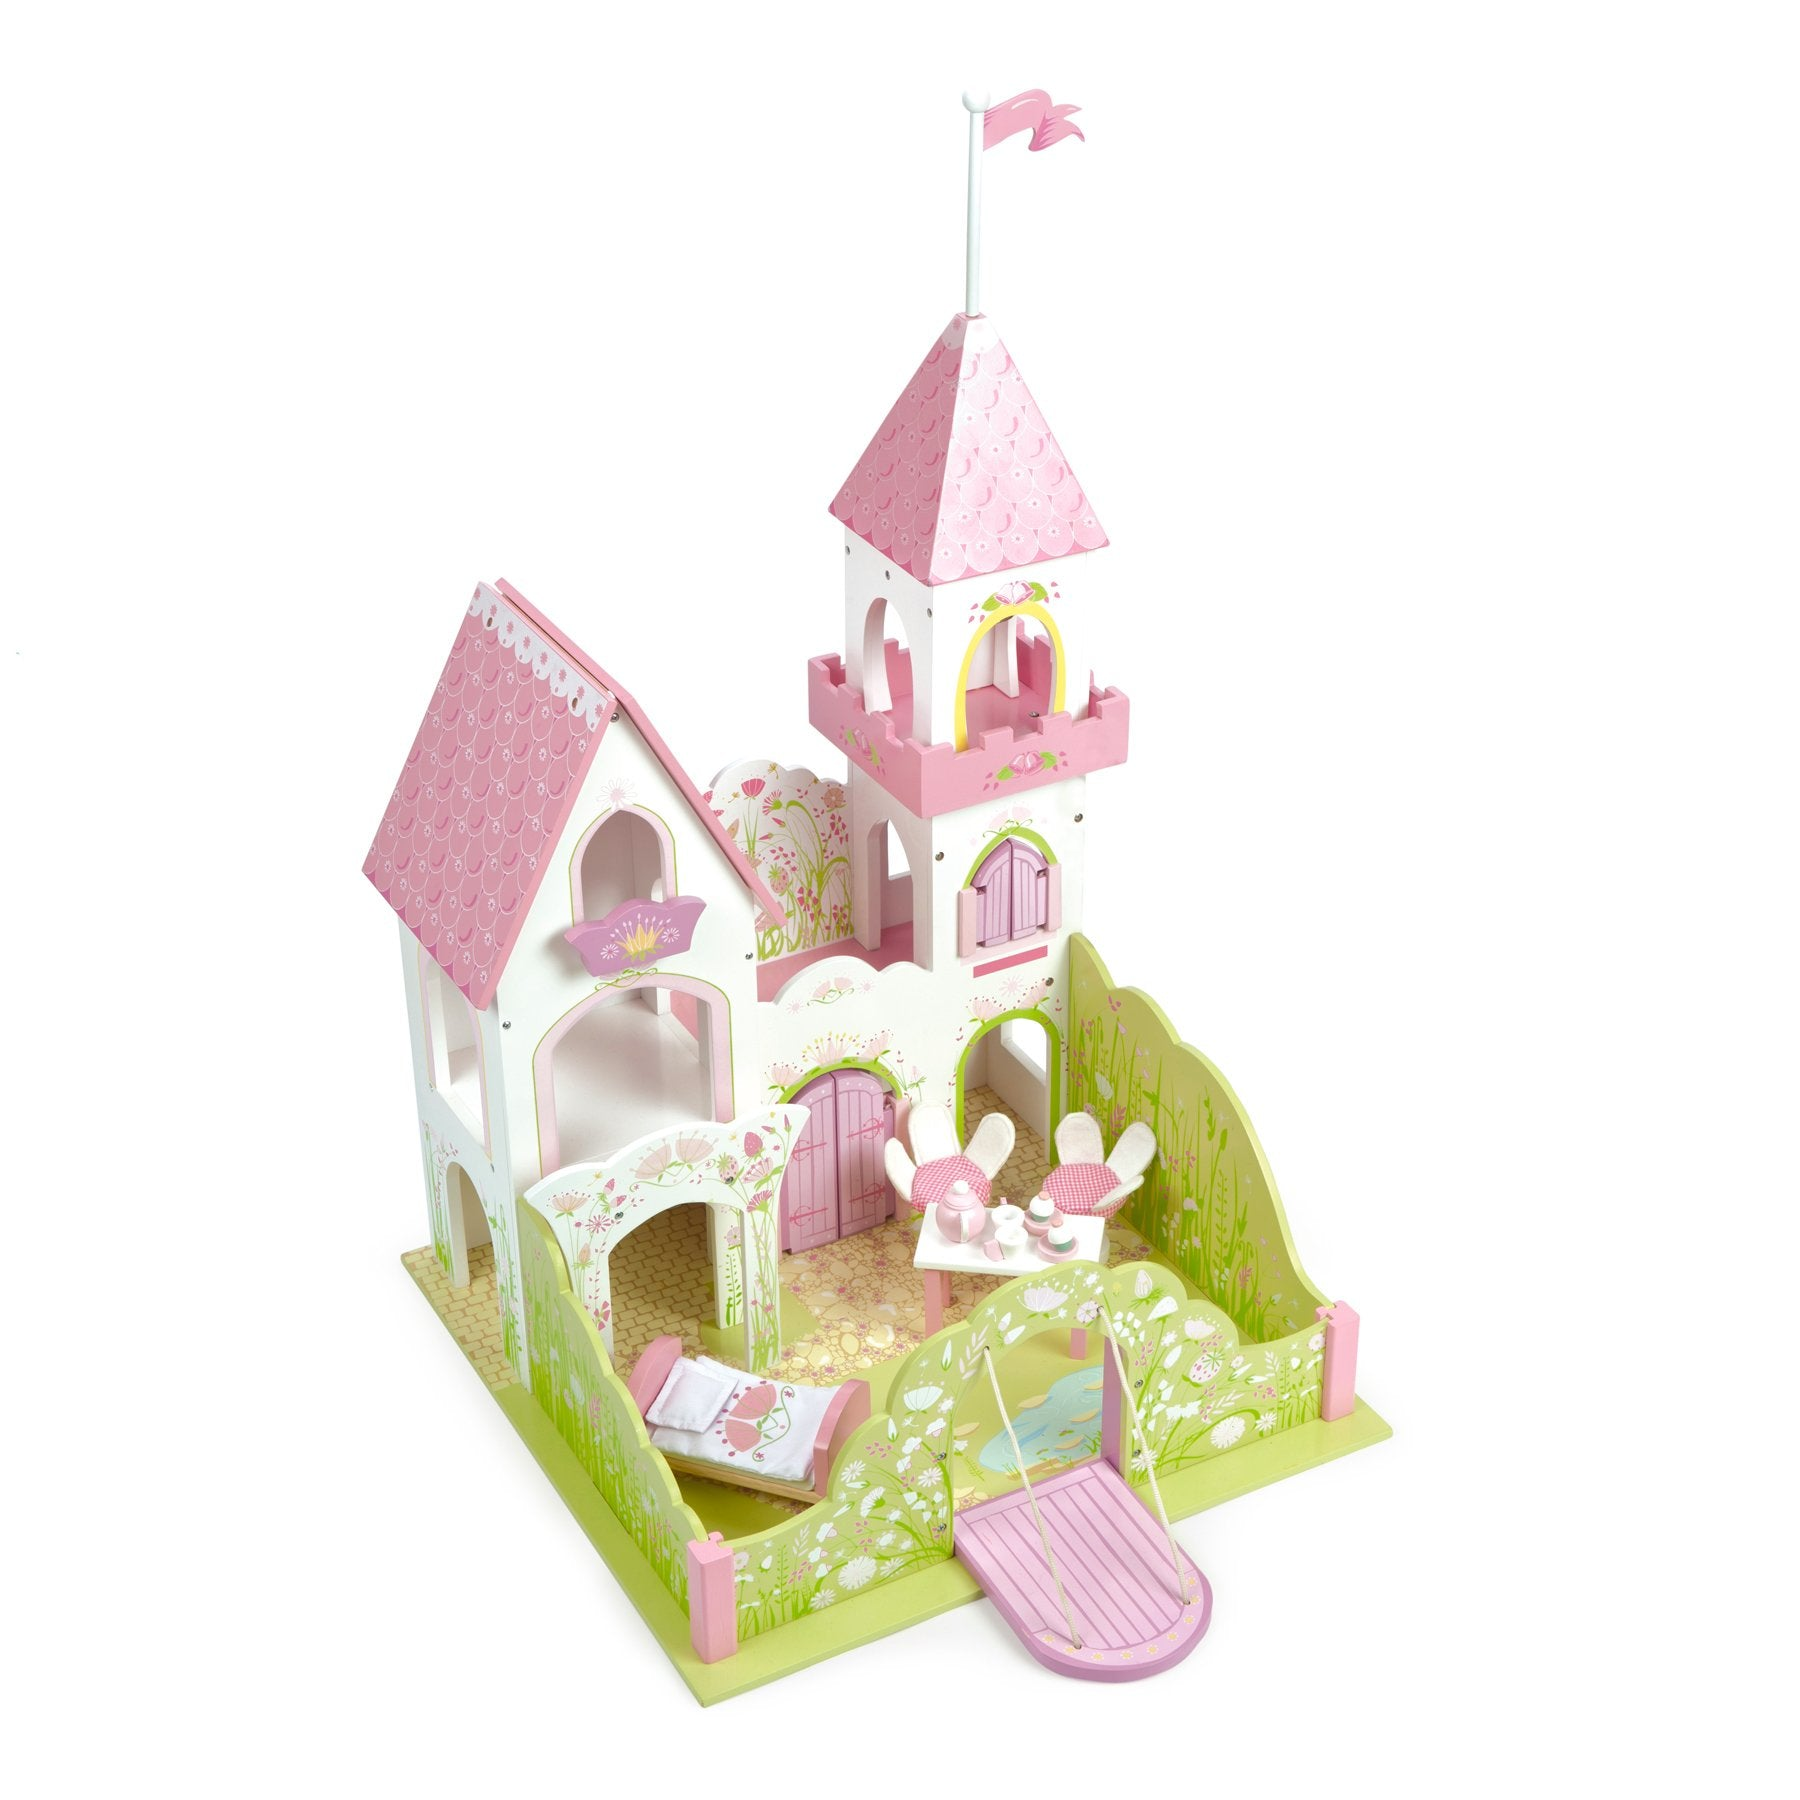 Le Toy Van Fairybelle Palace Leander Pretend Play at Little Earth Nest Eco Shop